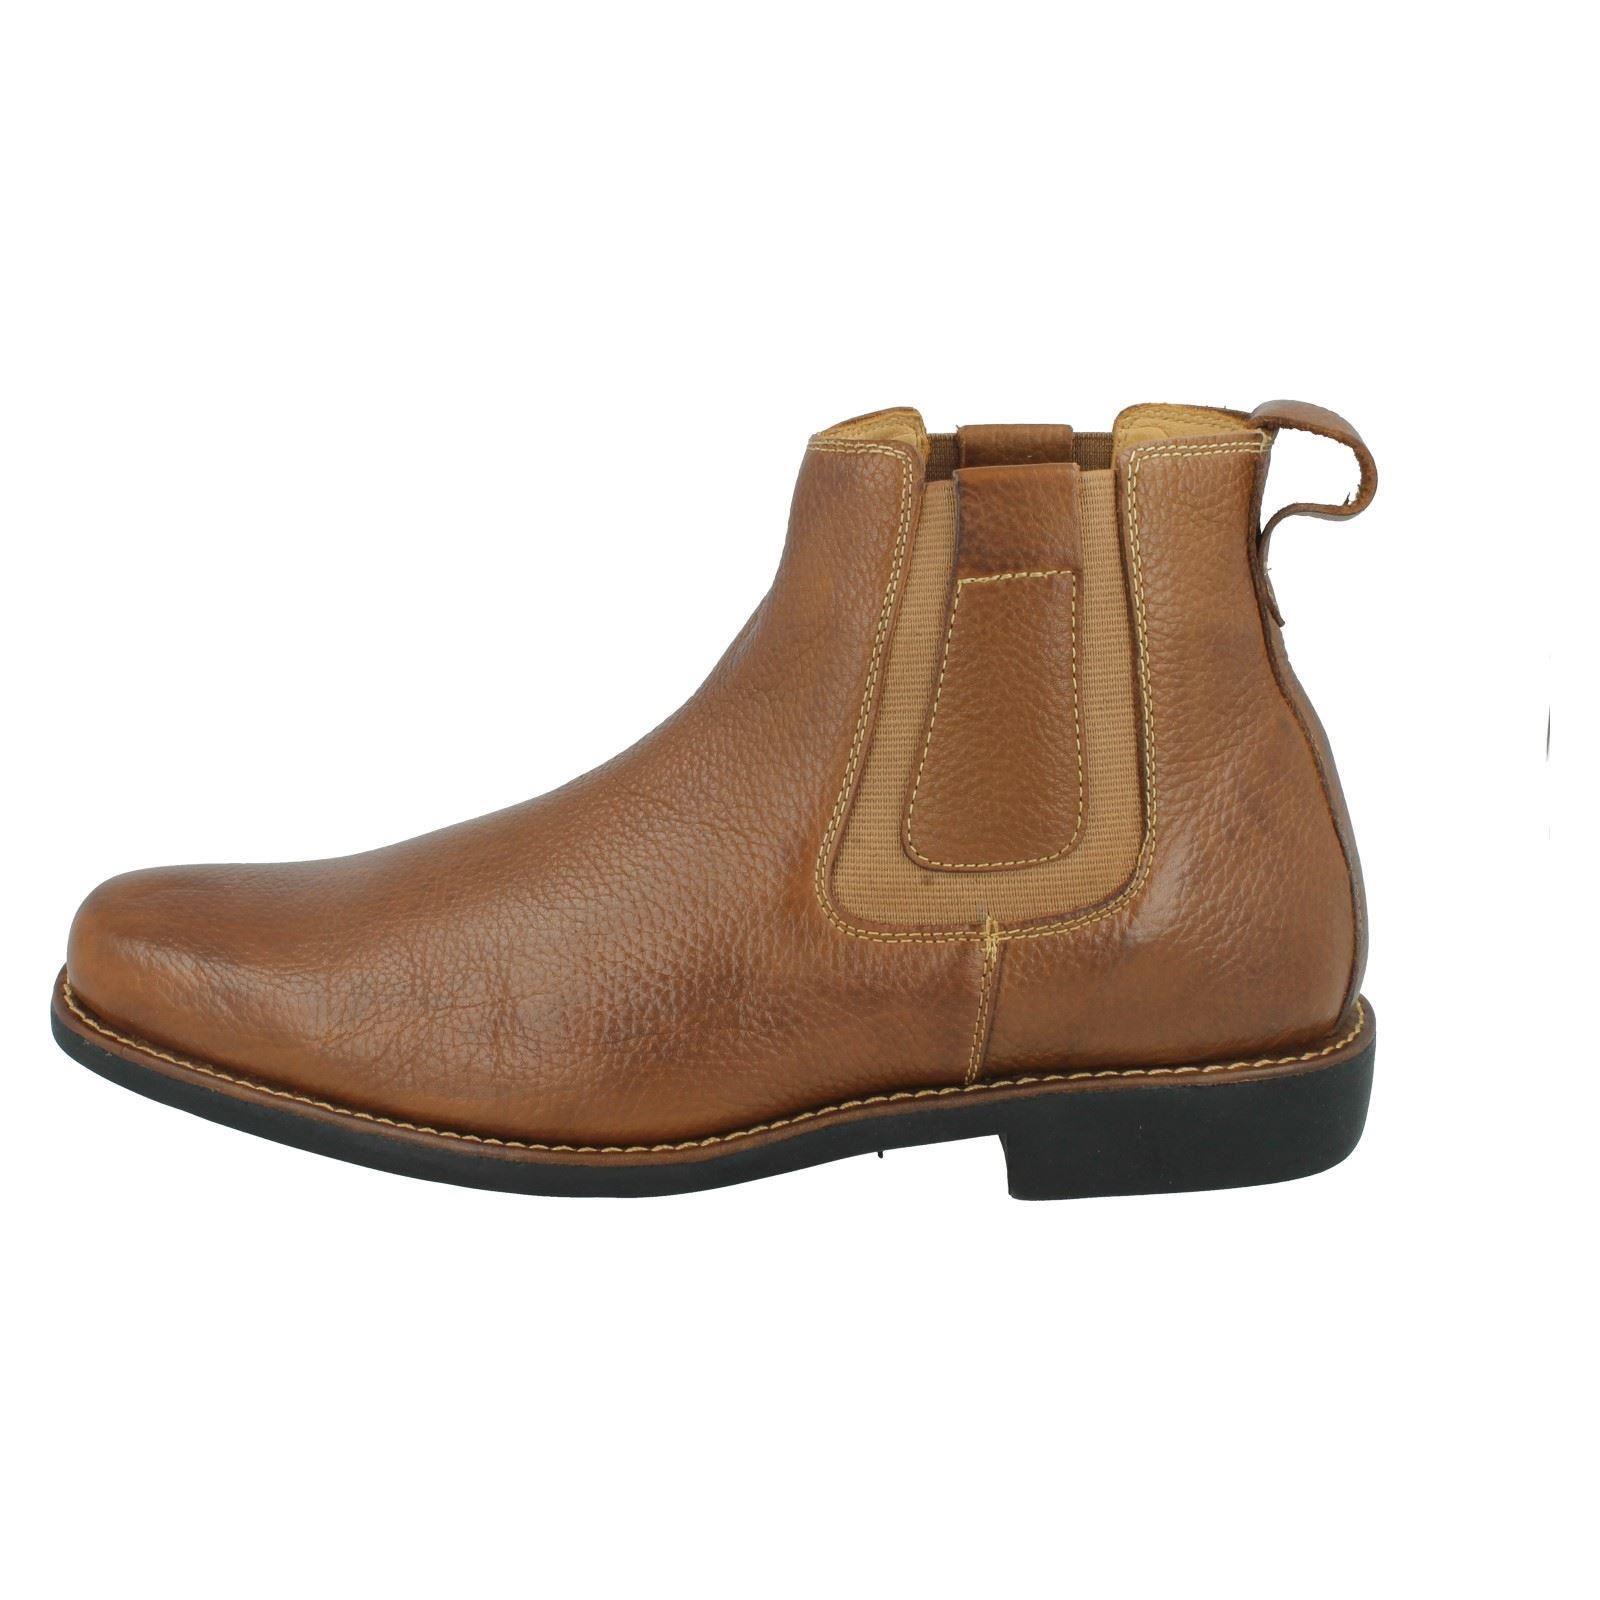 Uomo the Anatomic & Co Formal Chelsea Ankle Stiefel the Uomo Style - Natal c6ce33